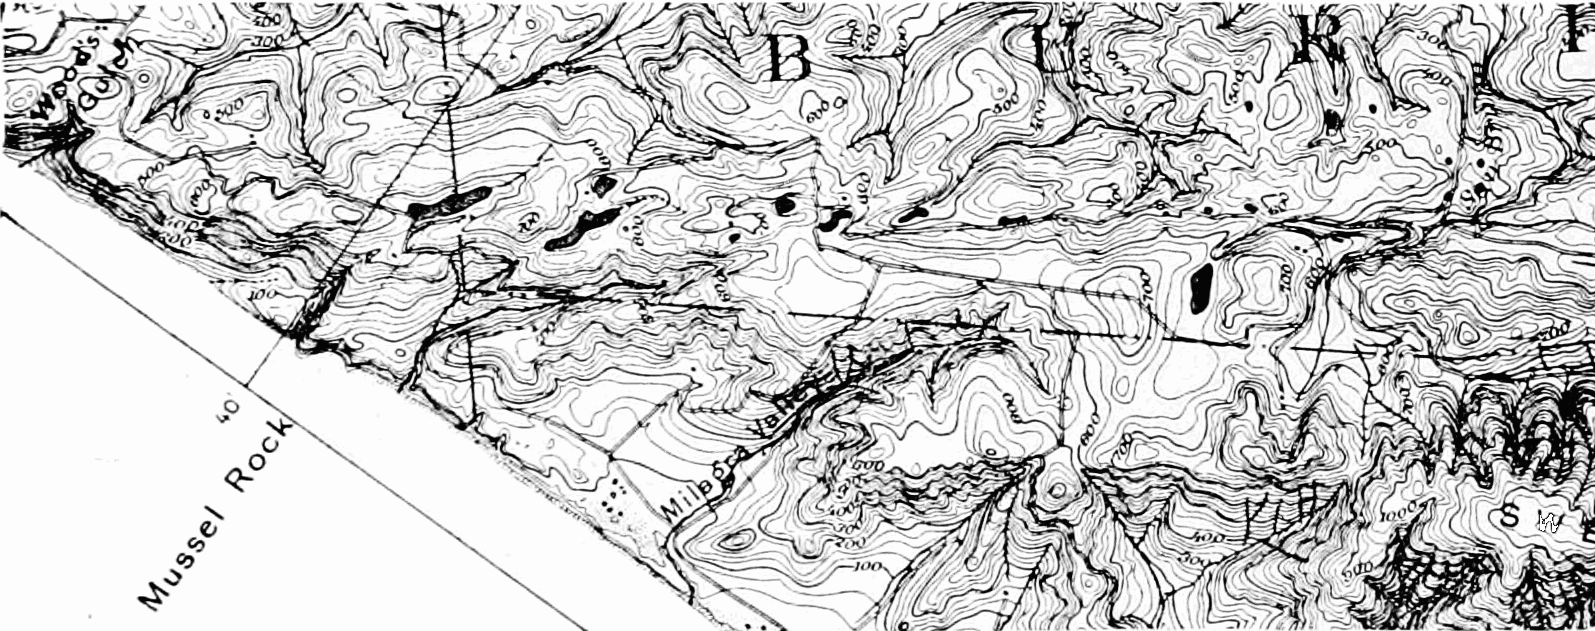 PSM V69 D077 Usgs map from mussel rock towards san andreas lake.png